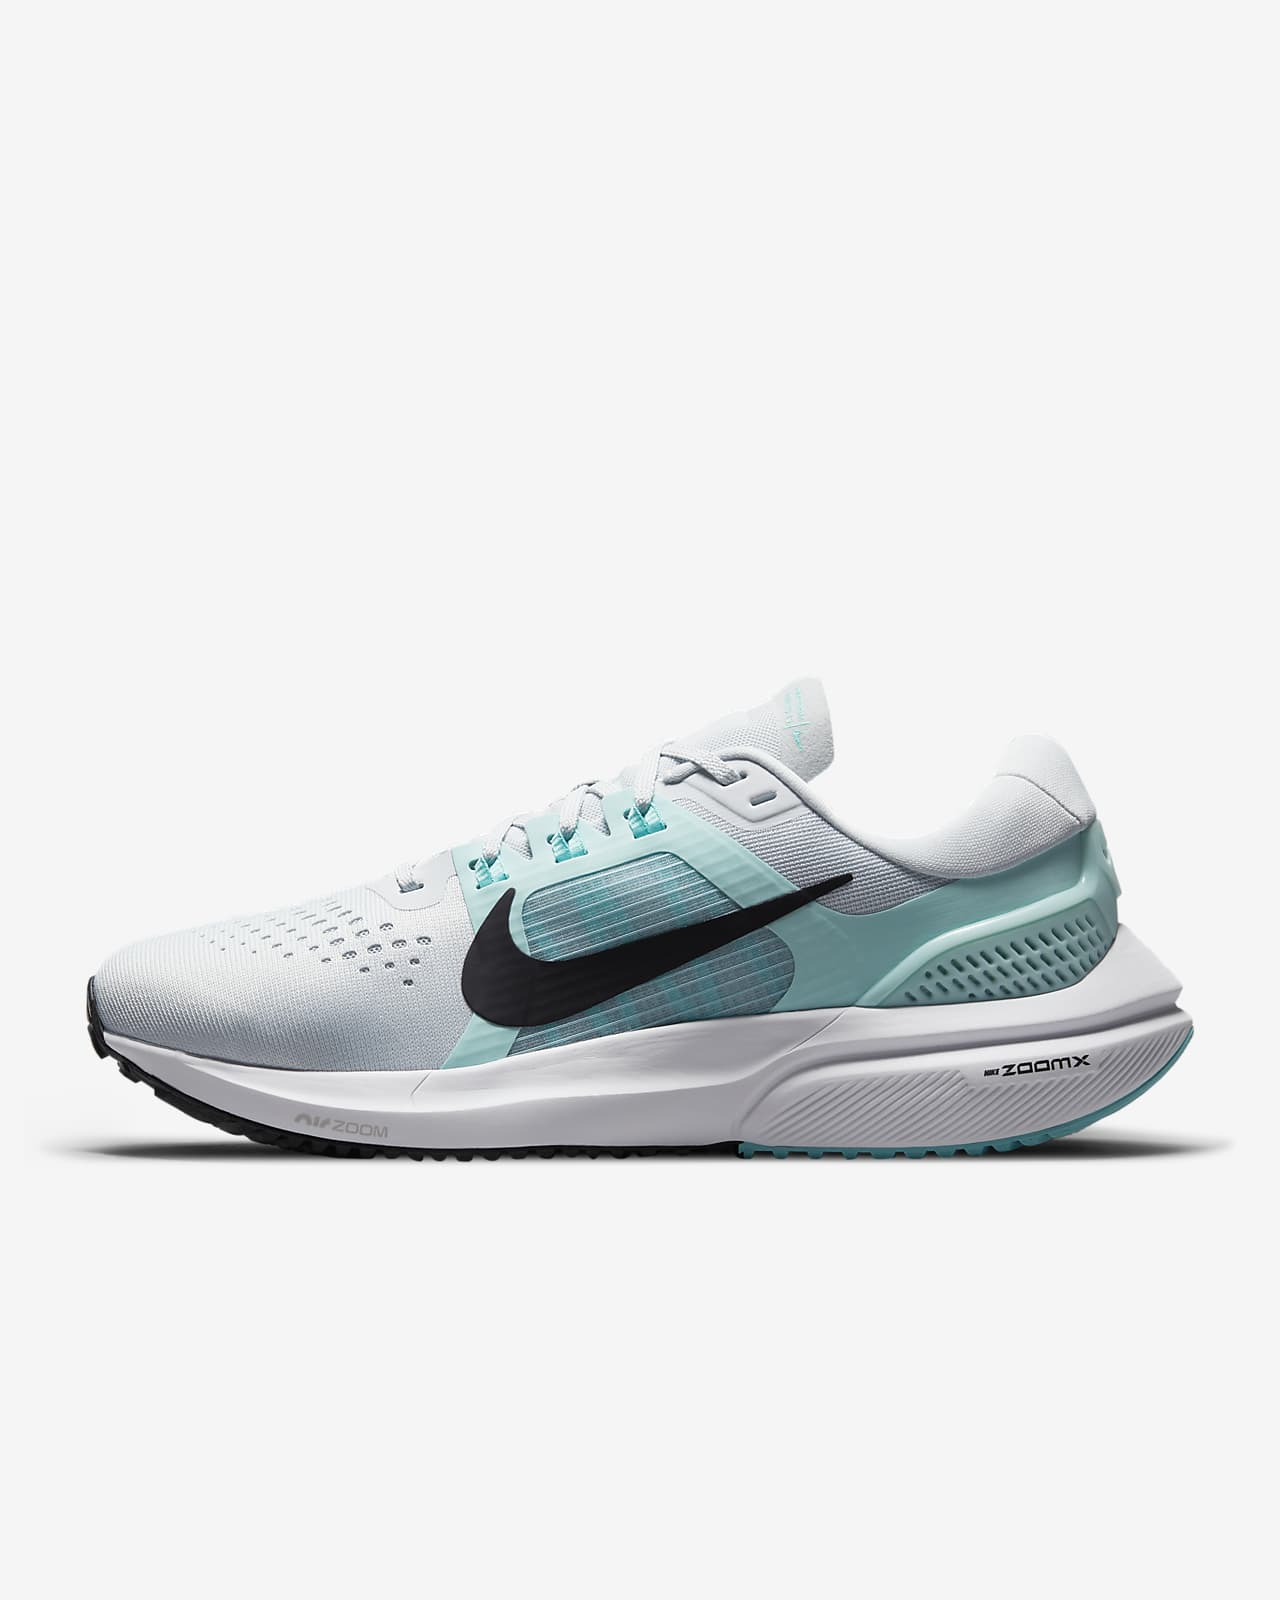 Nike Air Zoom Vomero 15 Women's Road Running Shoes